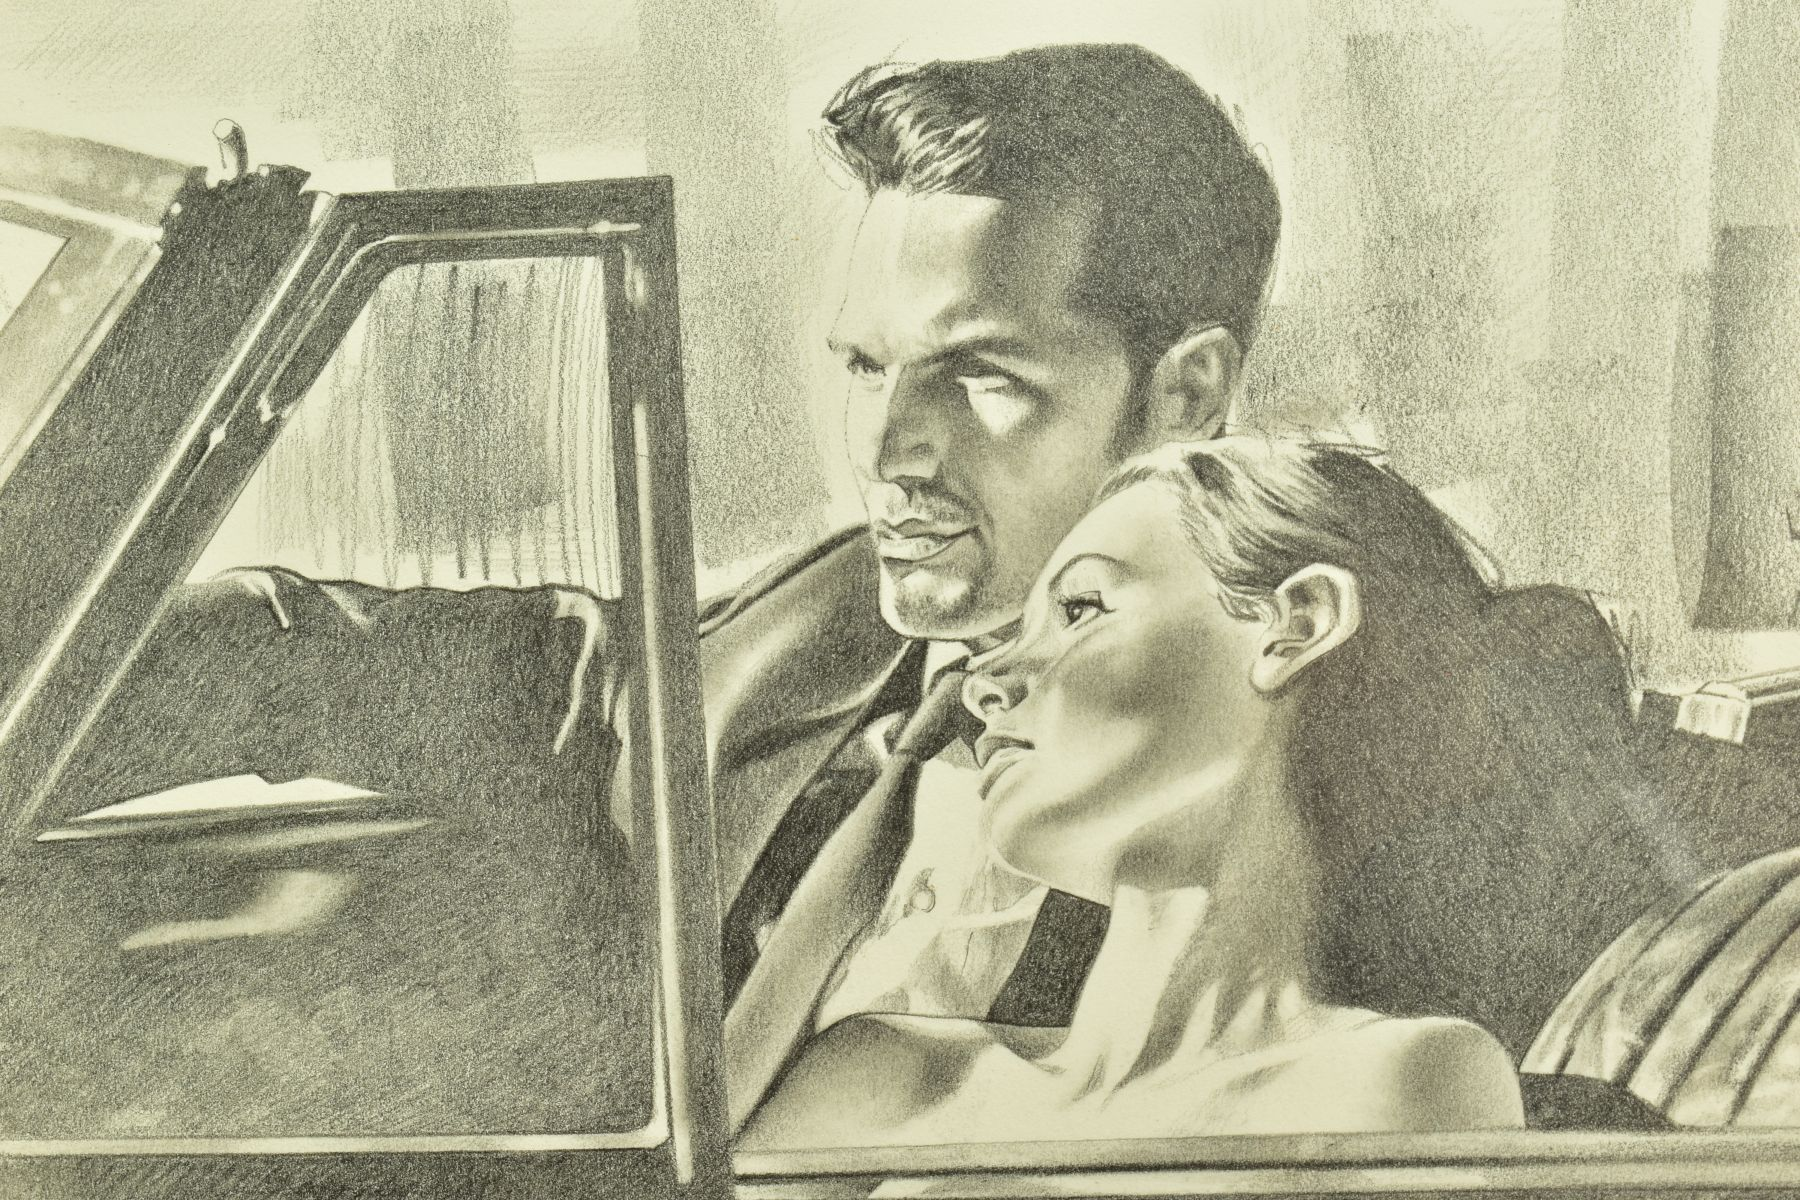 ROB HEFFERAN (BRITISH 1968), 'Study For Night and The City II', a charcoal sketch in preparation for - Image 3 of 9